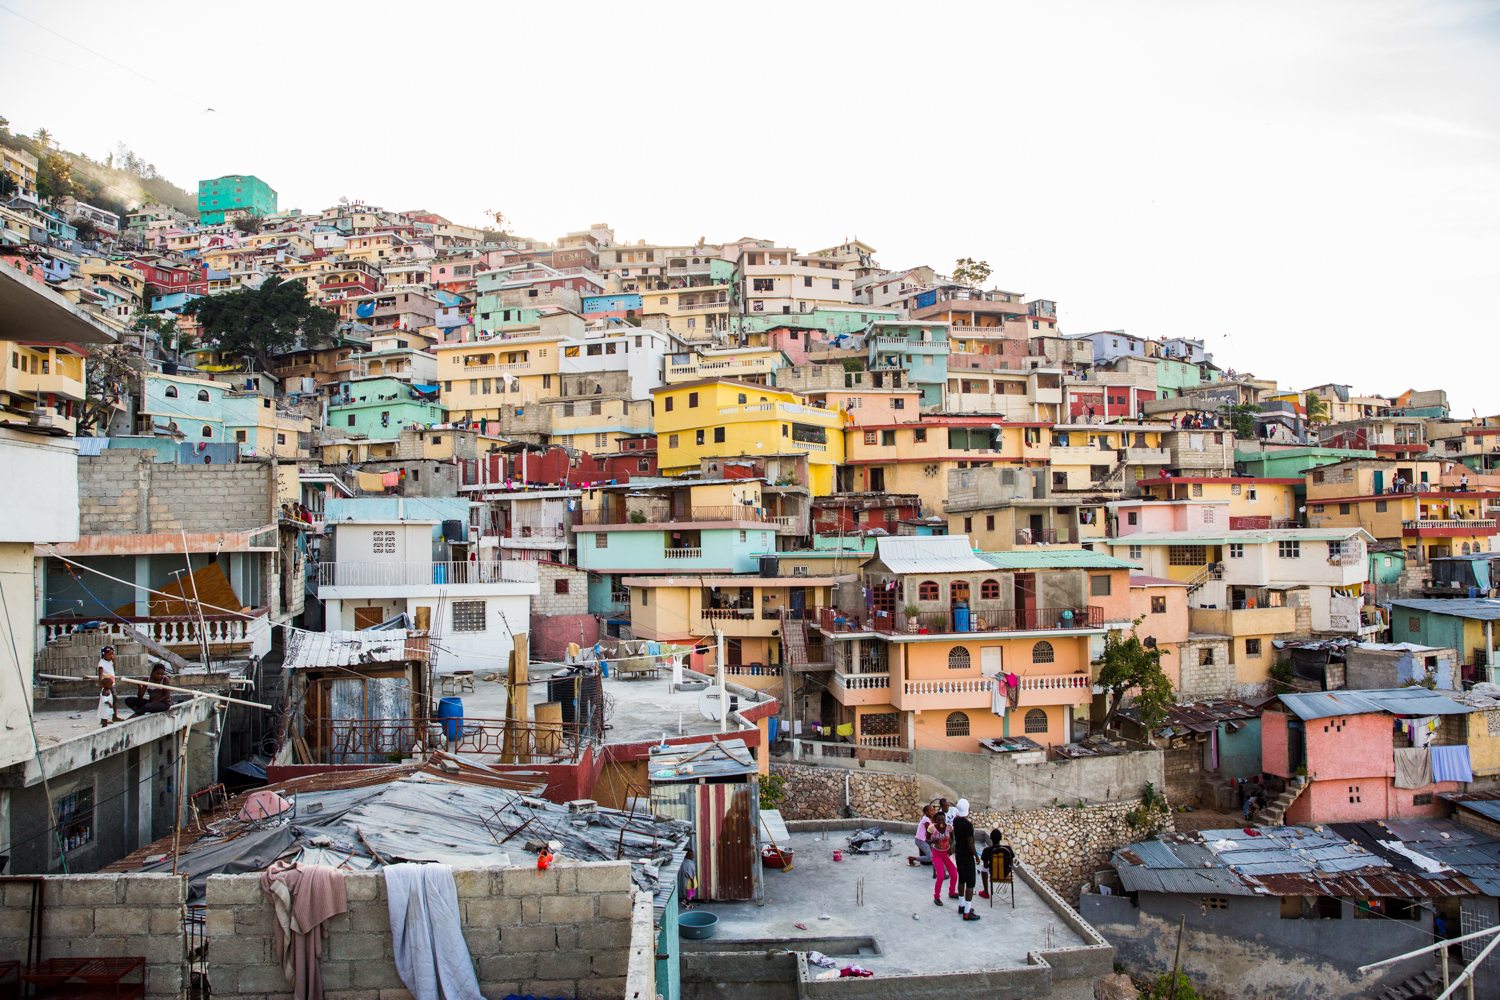 Jalouzi City, the largest slum in Port-au- Prince. In 2015, the houses were painted in color to uplift the community and bring hope. This mission was started by aresident and painter of Jalouzi, Duval Pierre.